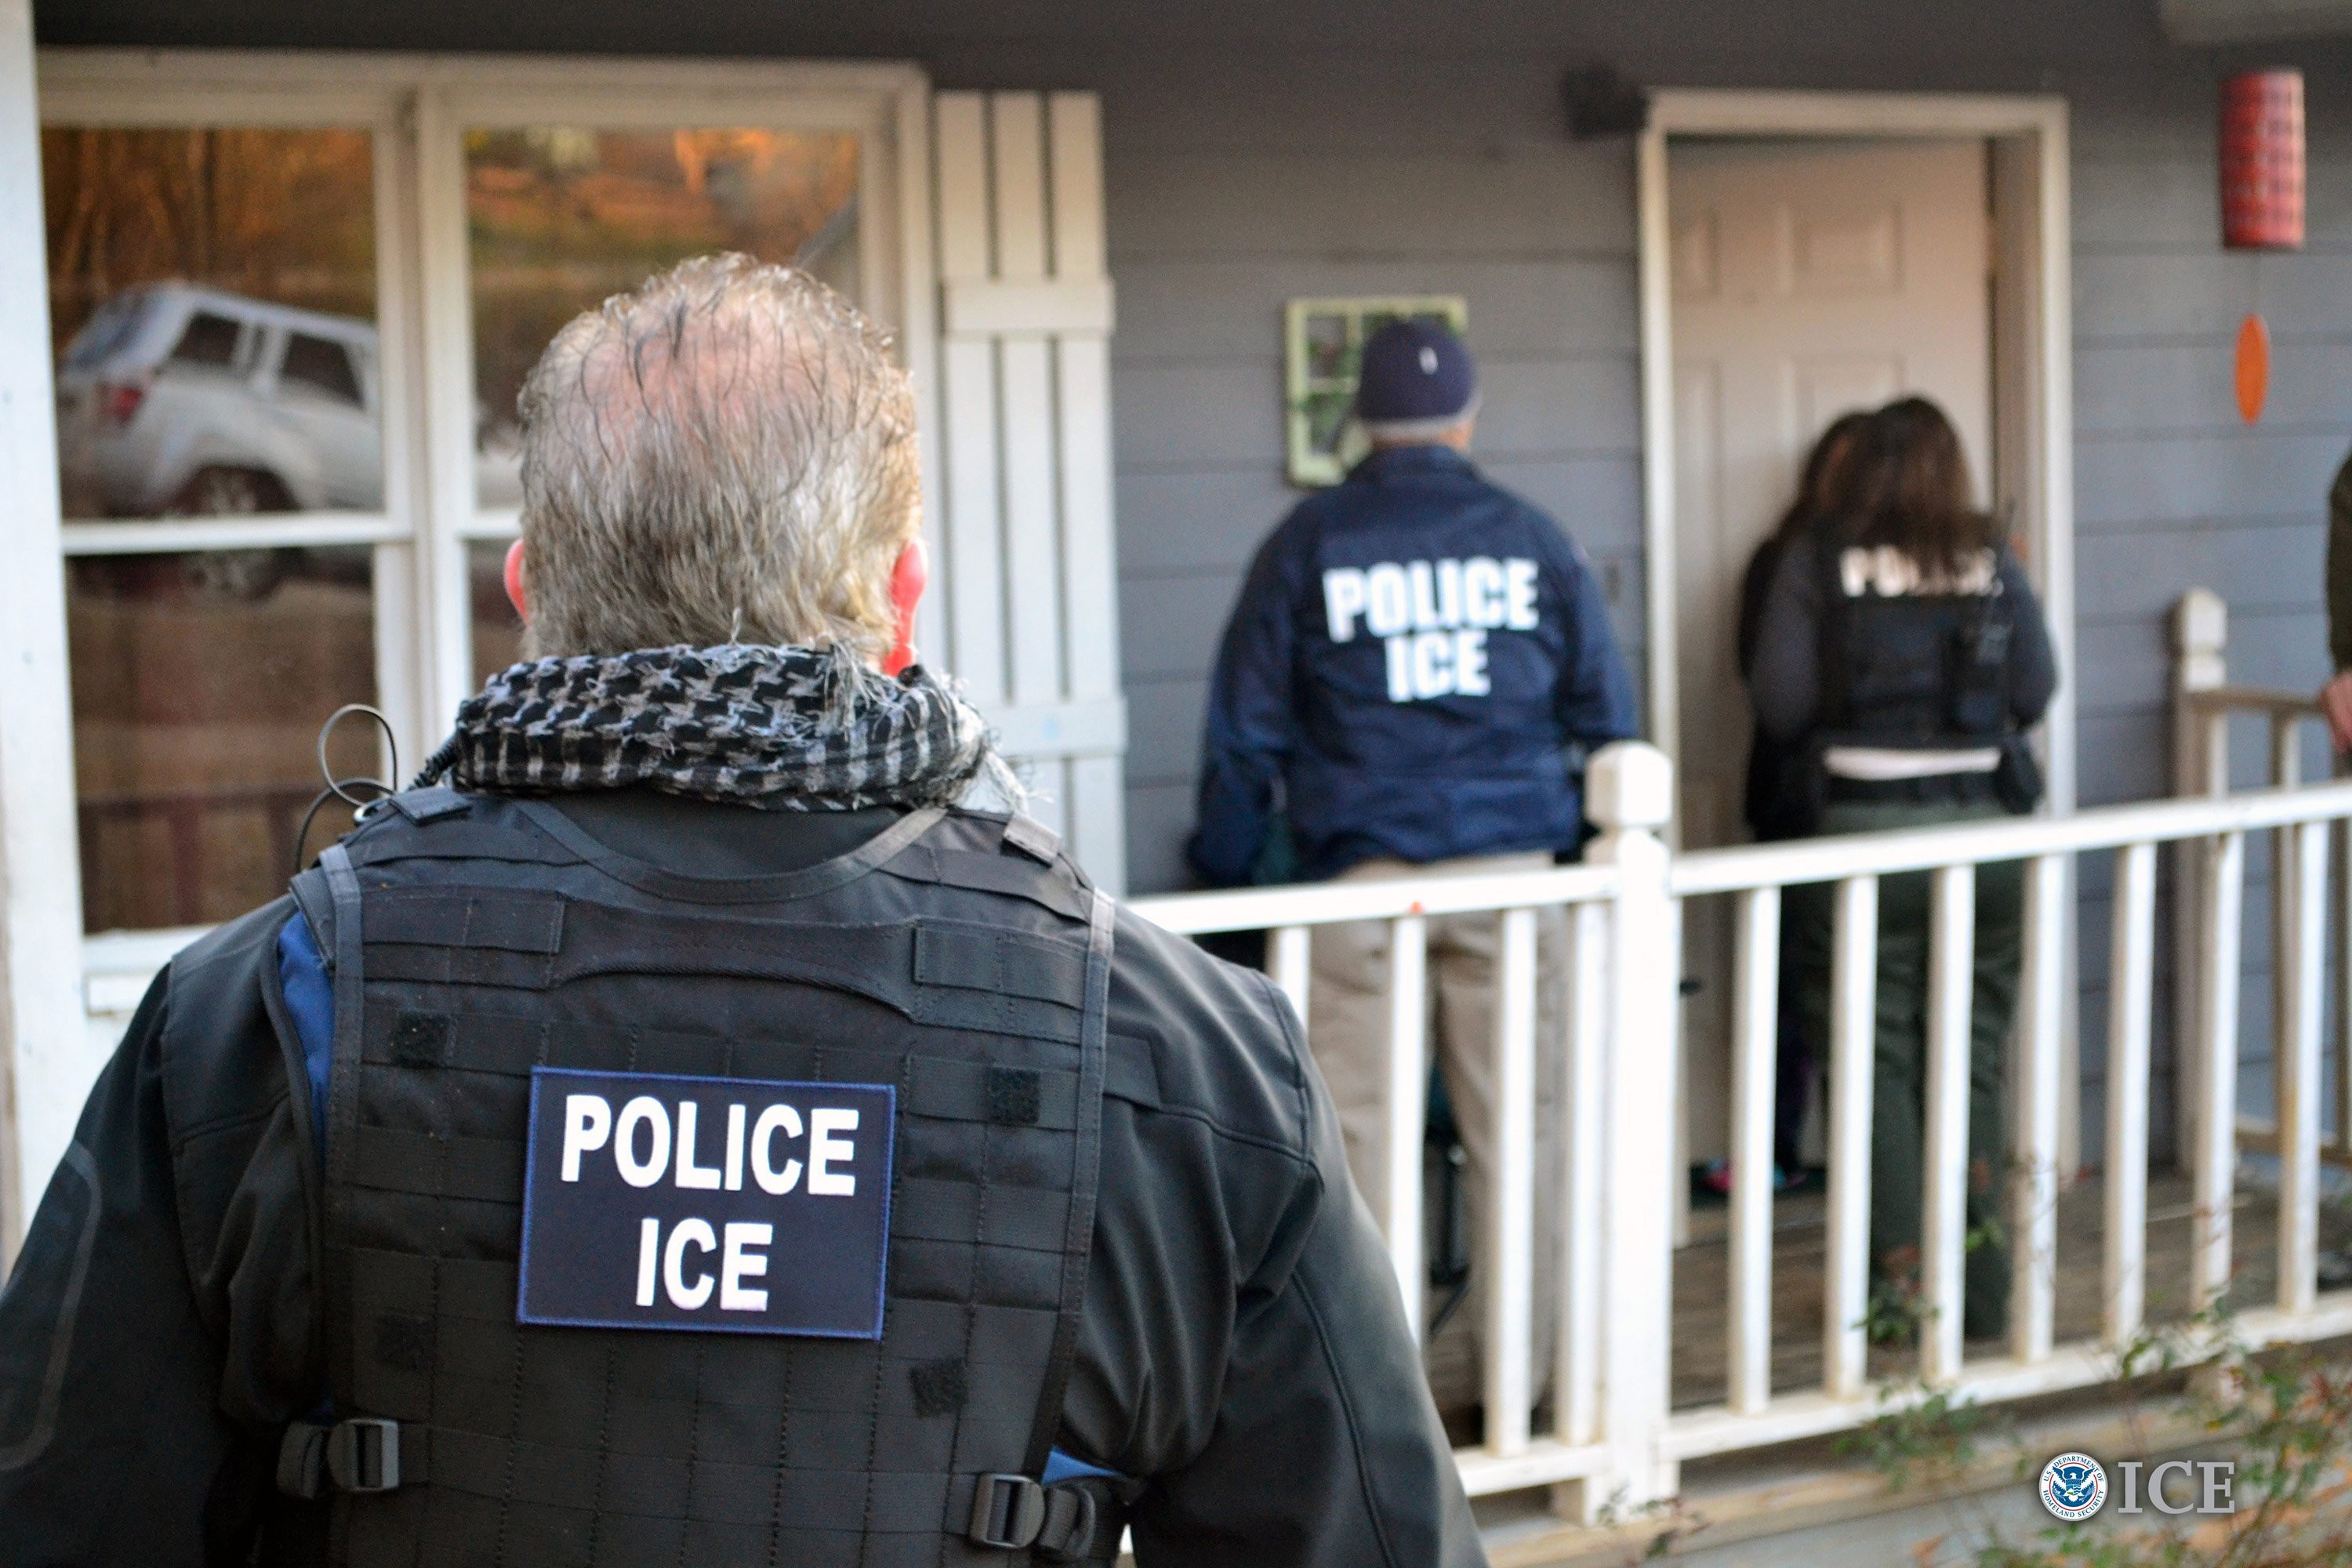 Update: US Immigration to begin its nationwide raids this Sunday to arrest and deport thousands of undocumented immigrants